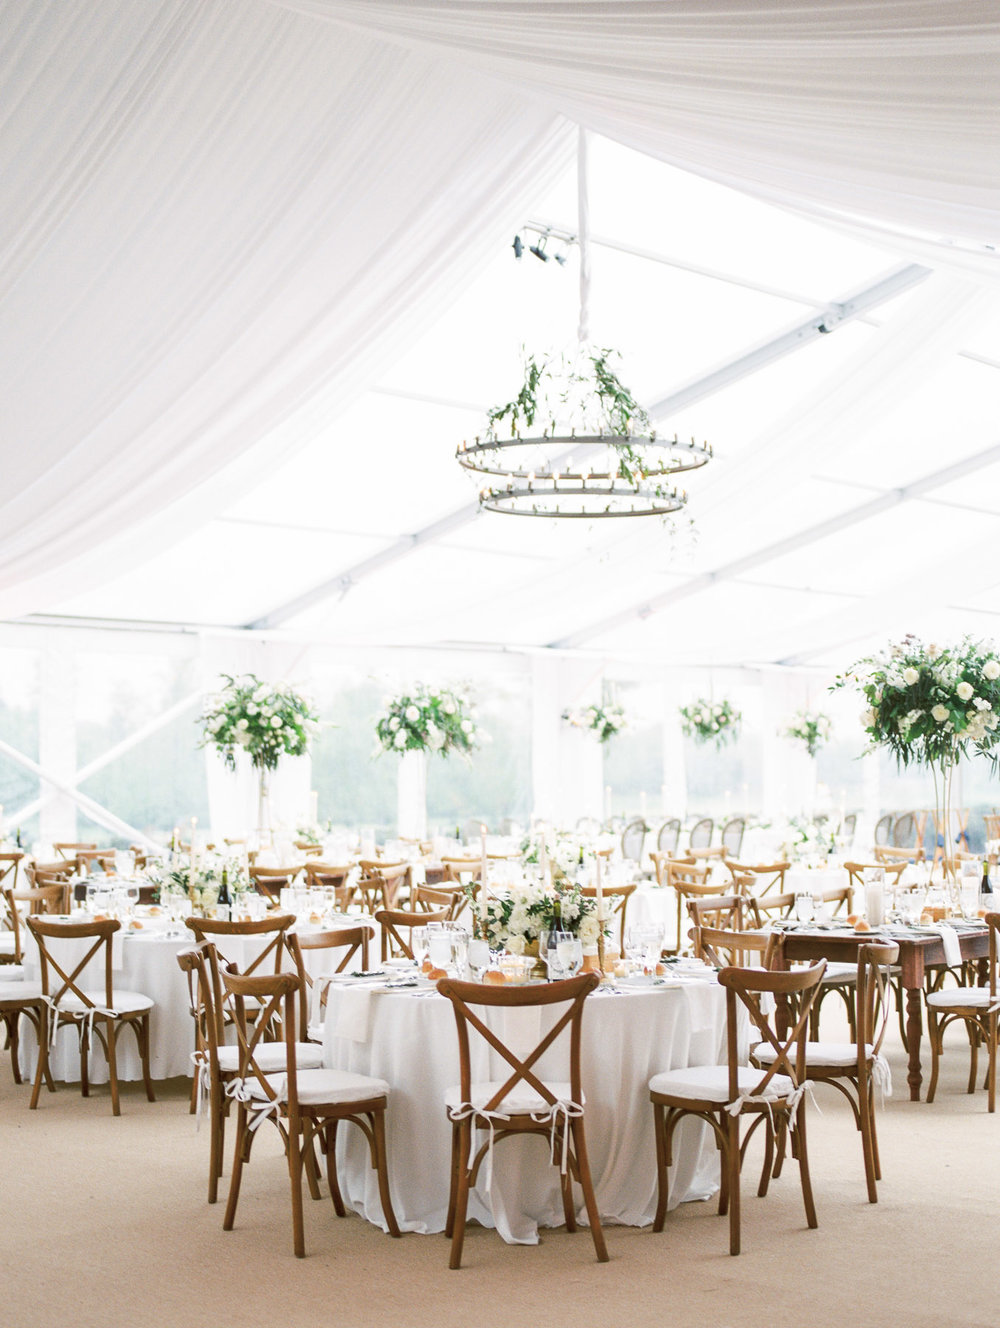 Tented Reception by Renaissance Floral Design